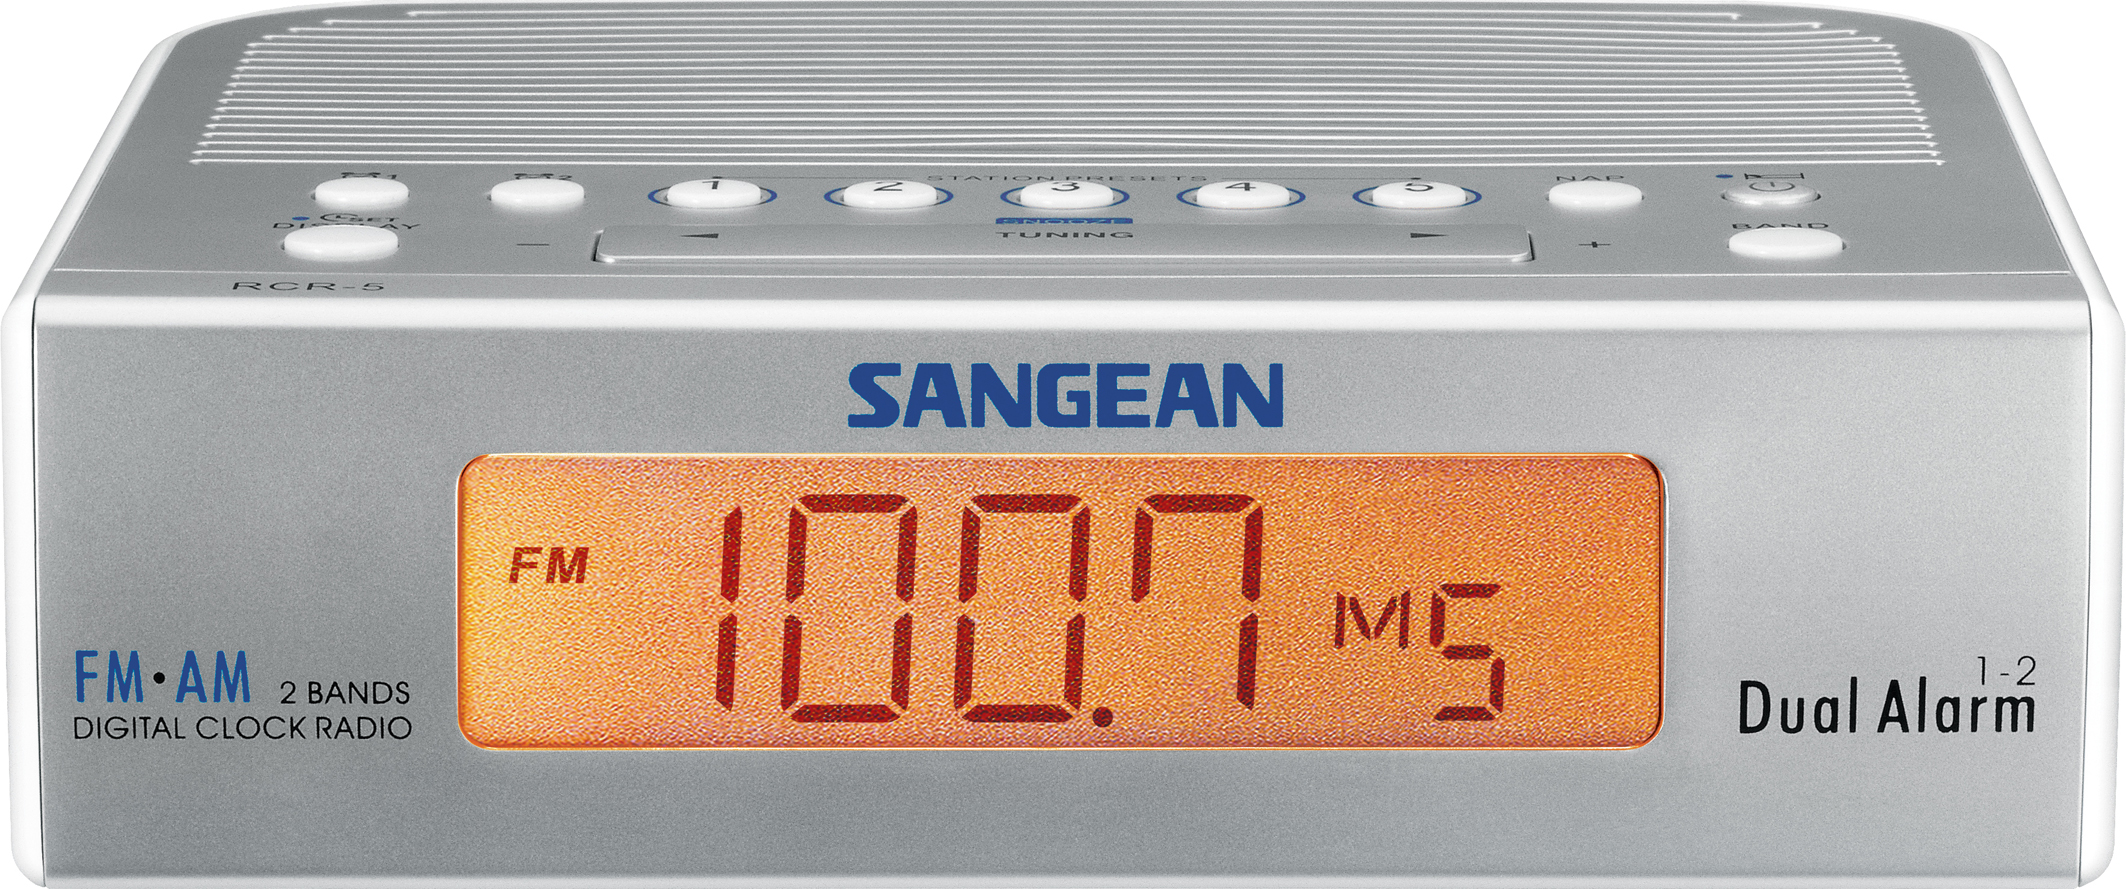 RCR-5, digital clock radio, silver